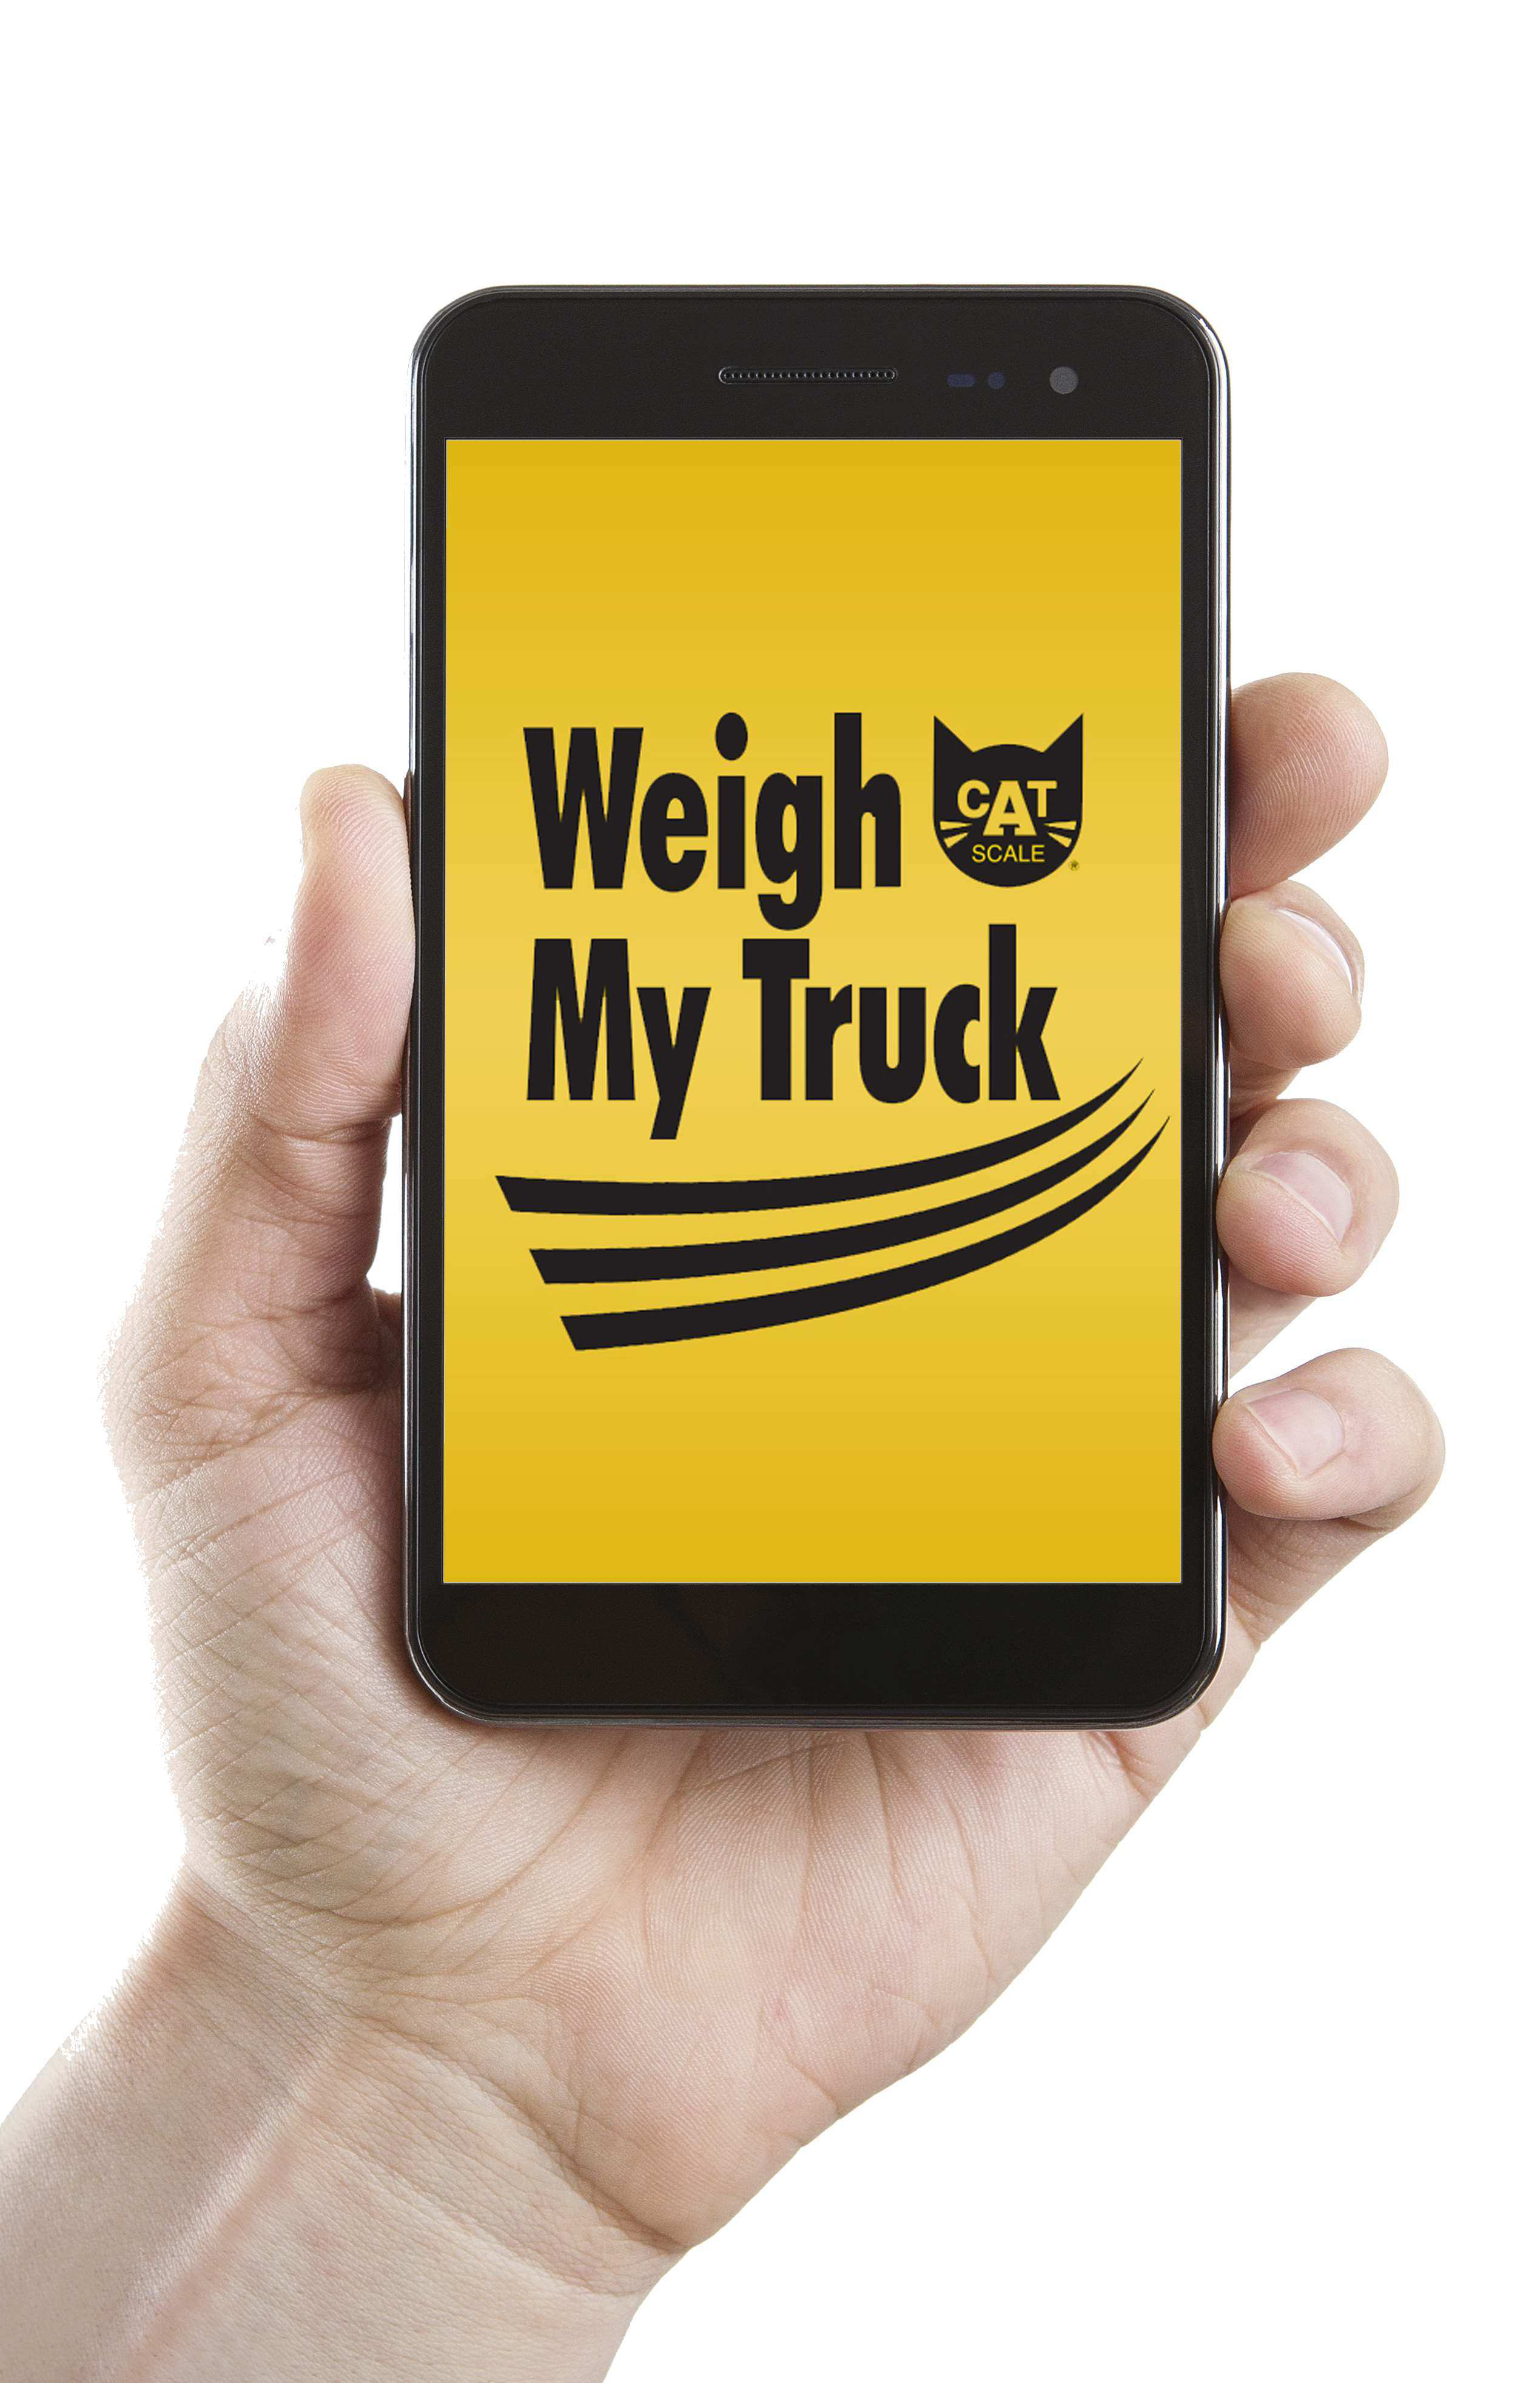 CAT Scale adds Comdata as payment option in Weigh My Truck app